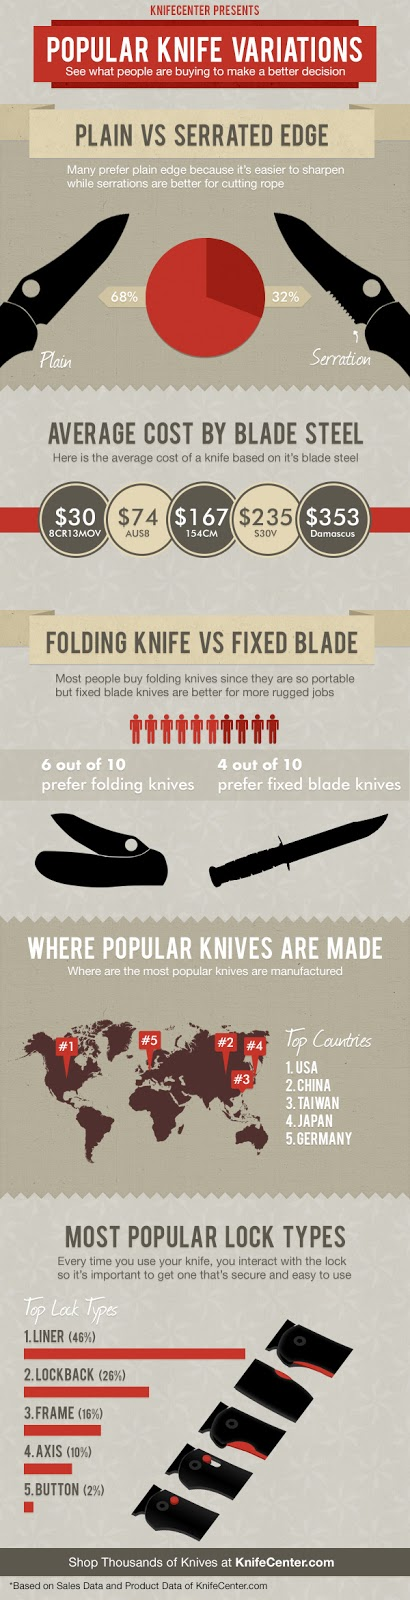 Infographic on Popular Knife Variations